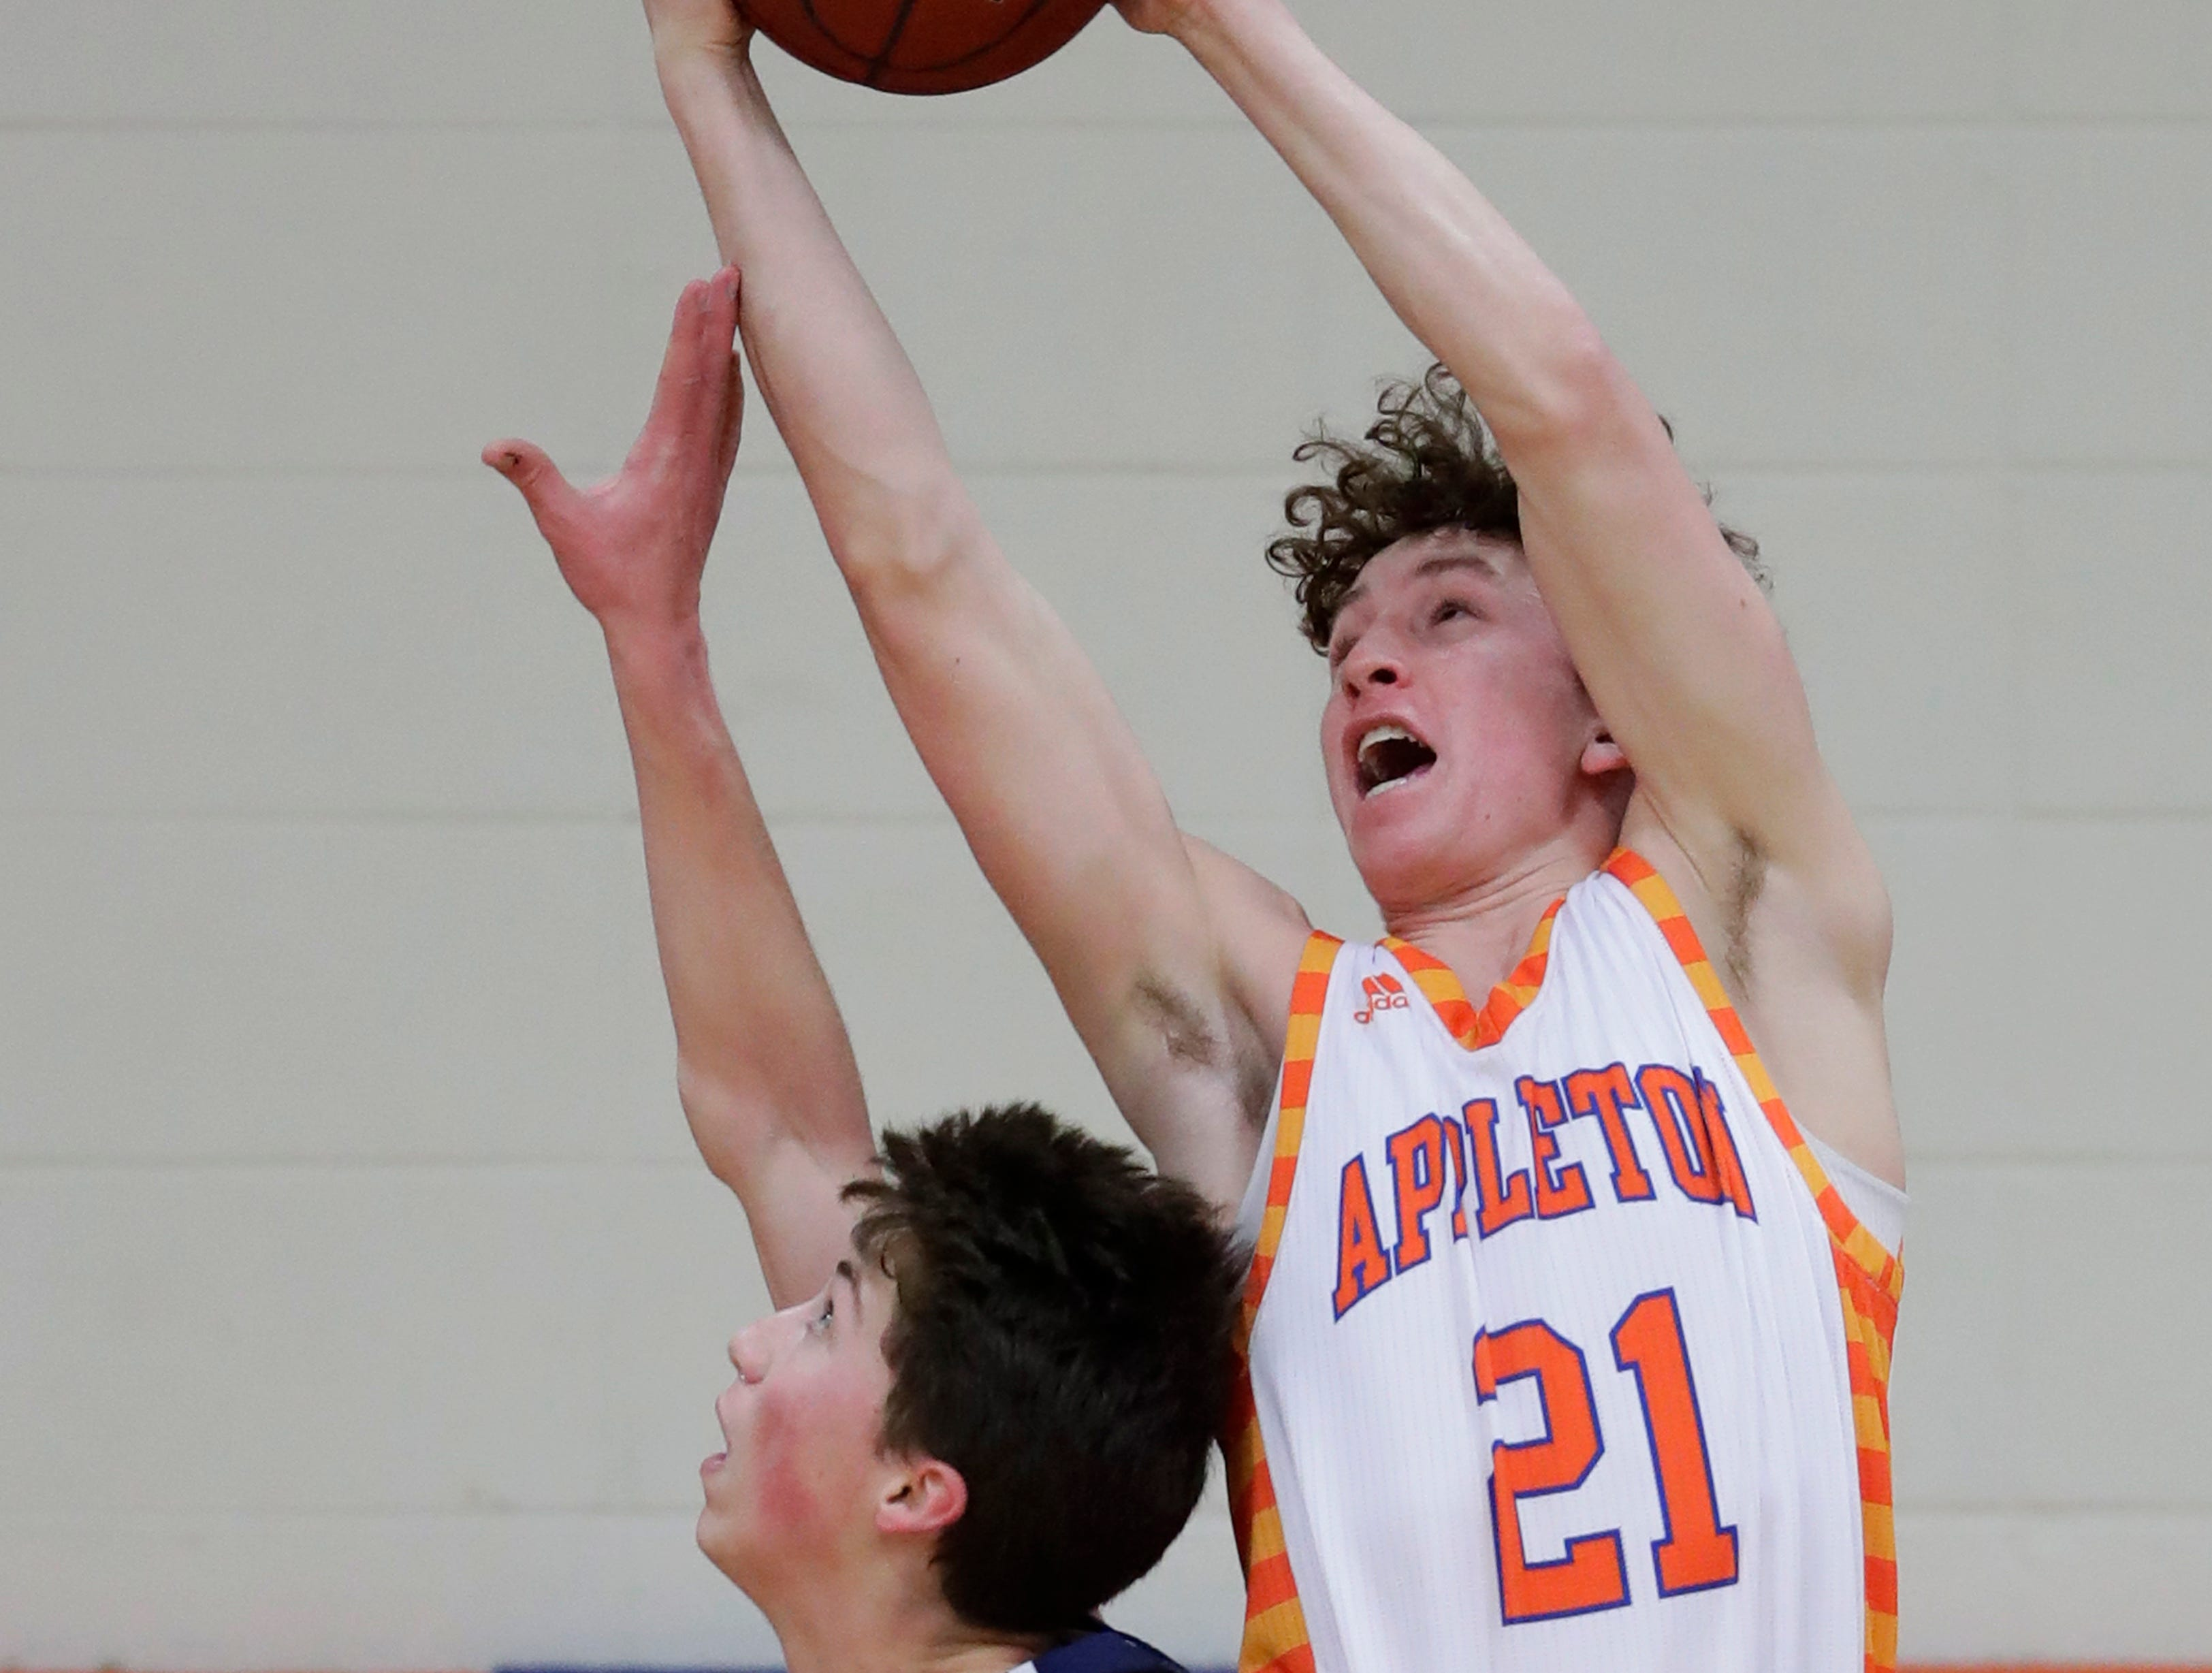 Appleton West  High School's Will Mahoney (21) pulls down a rebound against Wausau West High School's Tim Deloye (11) during their boys basketball game Friday, December 28, 2018, in Appleton, Wis. Dan Powers/USA TODAY NETWORK-Wisconsin